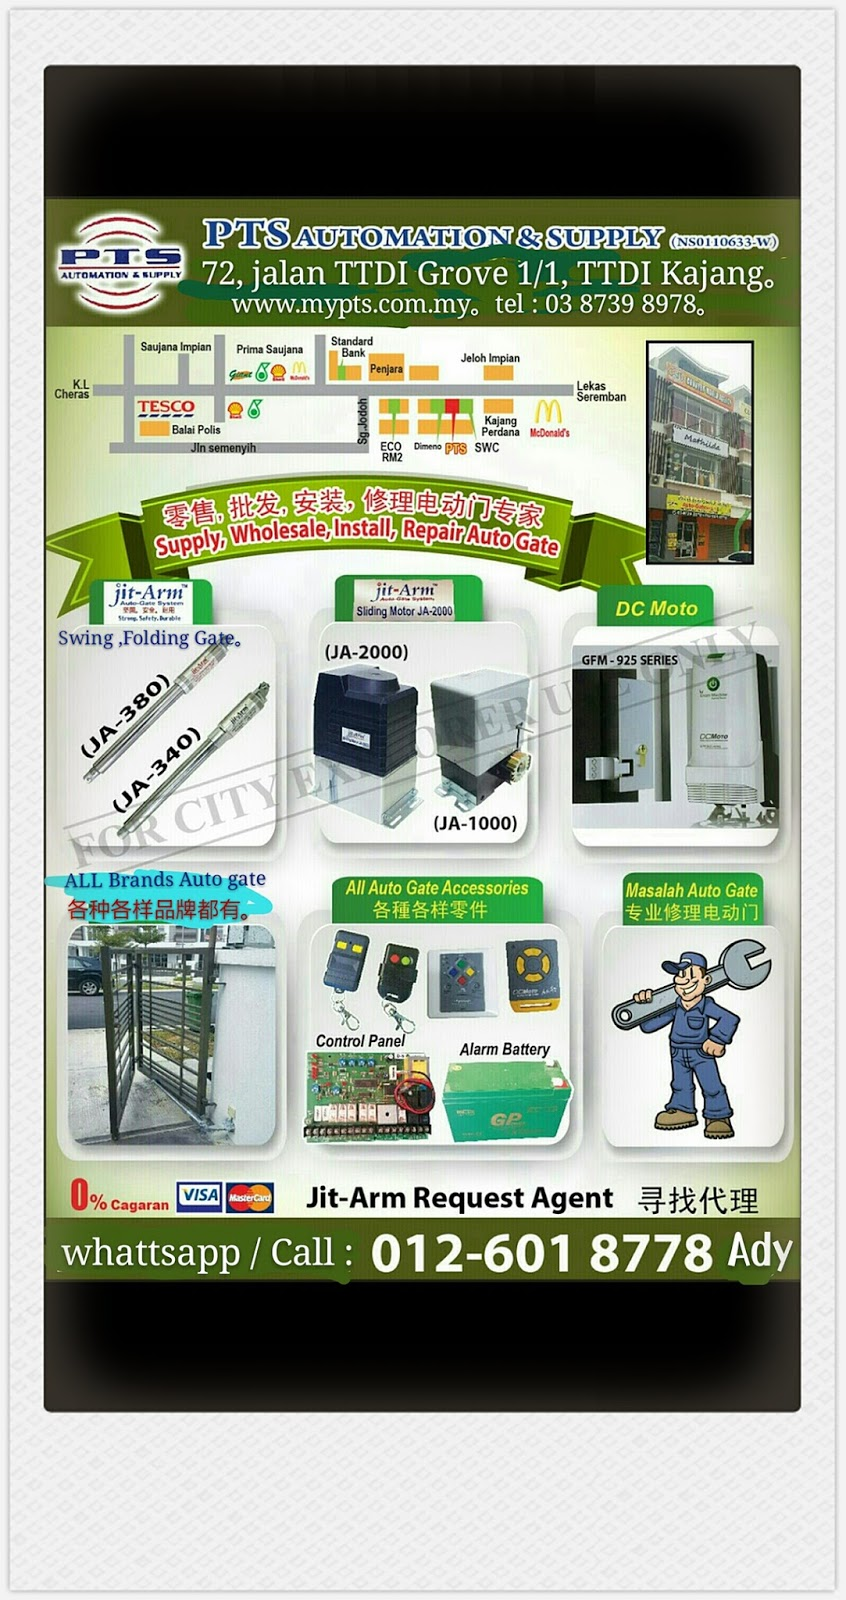 PTS: PTS Automation & Supply specialist in Auto Gate system